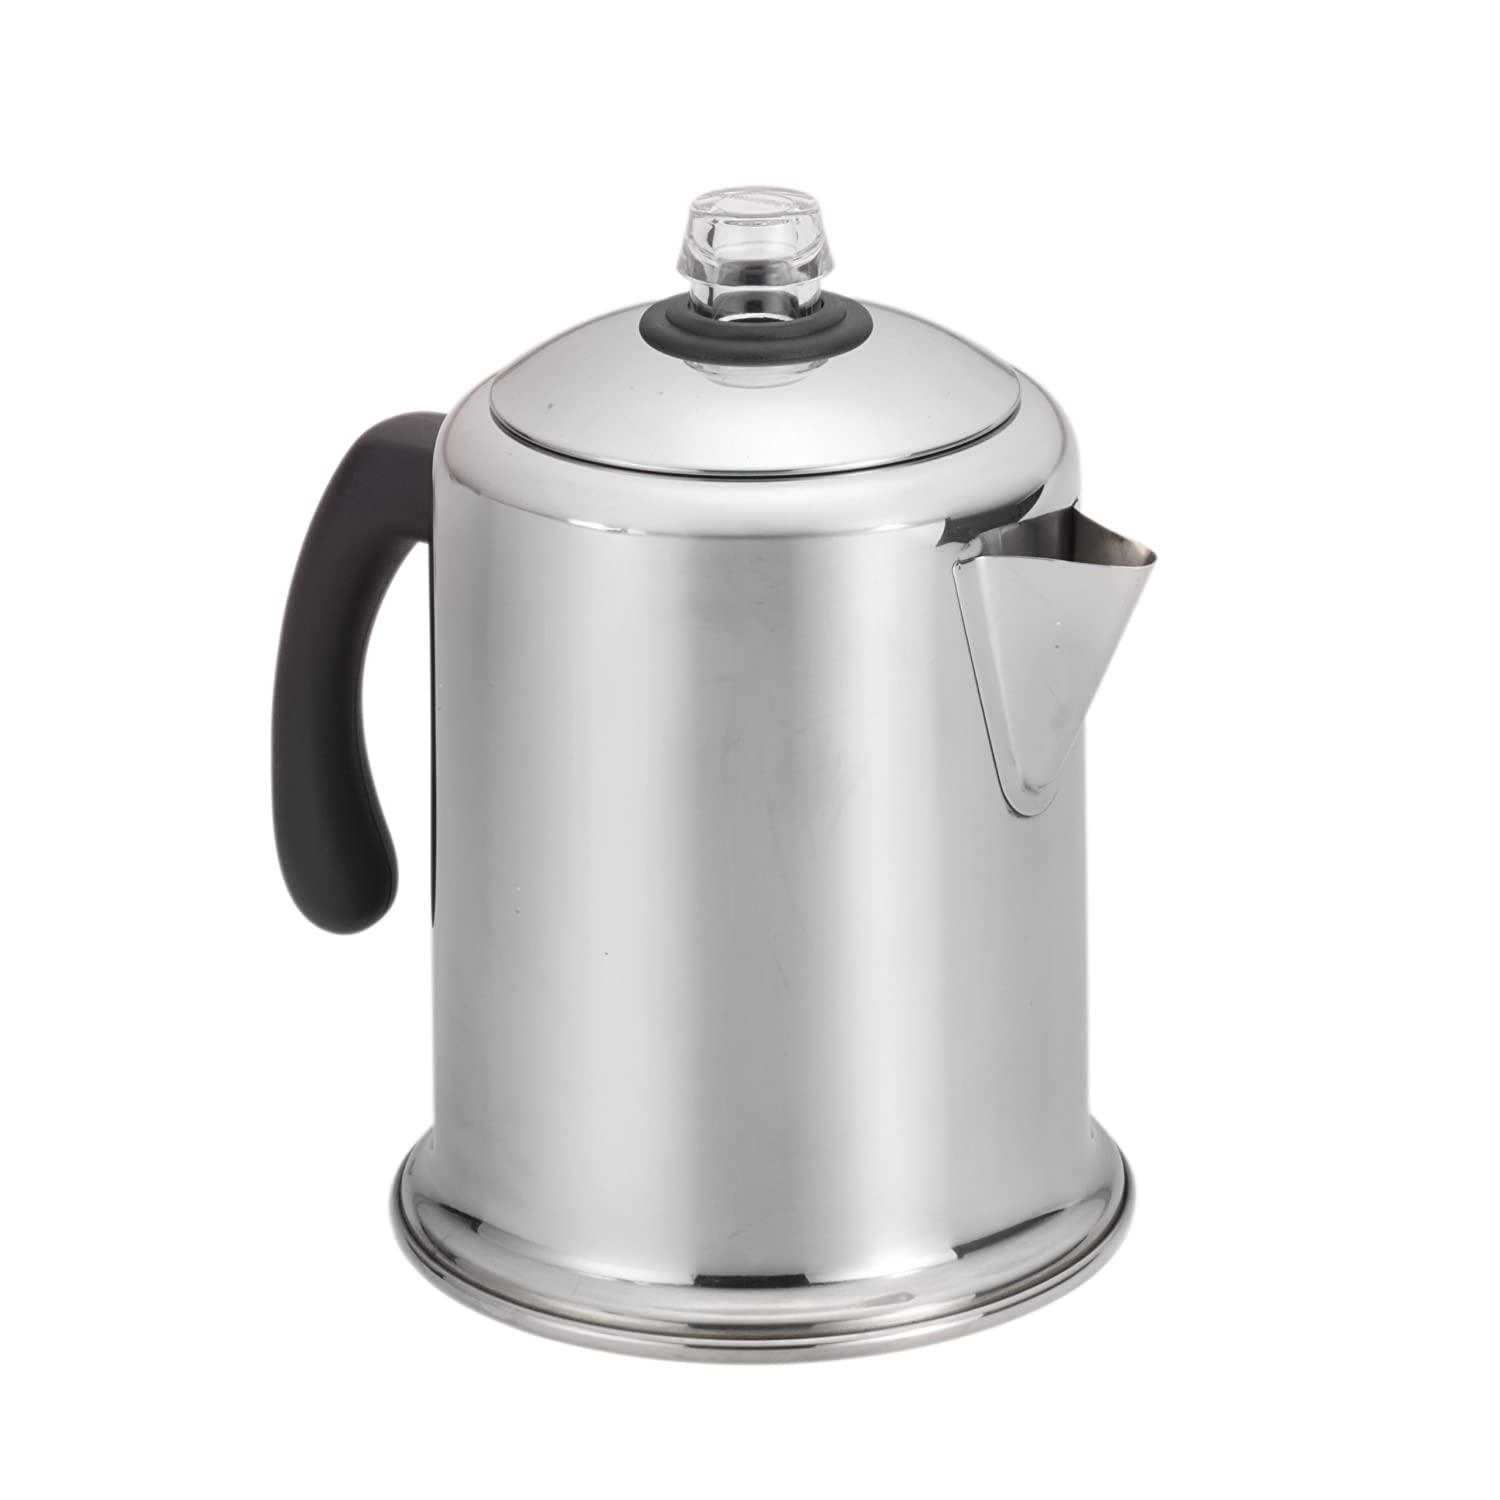 Metal Coffee Maker For Stove : Farberware S Steel 8-Cup Coffee Maker Percolator Stove Top Brewer Maker Moka Pot eBay